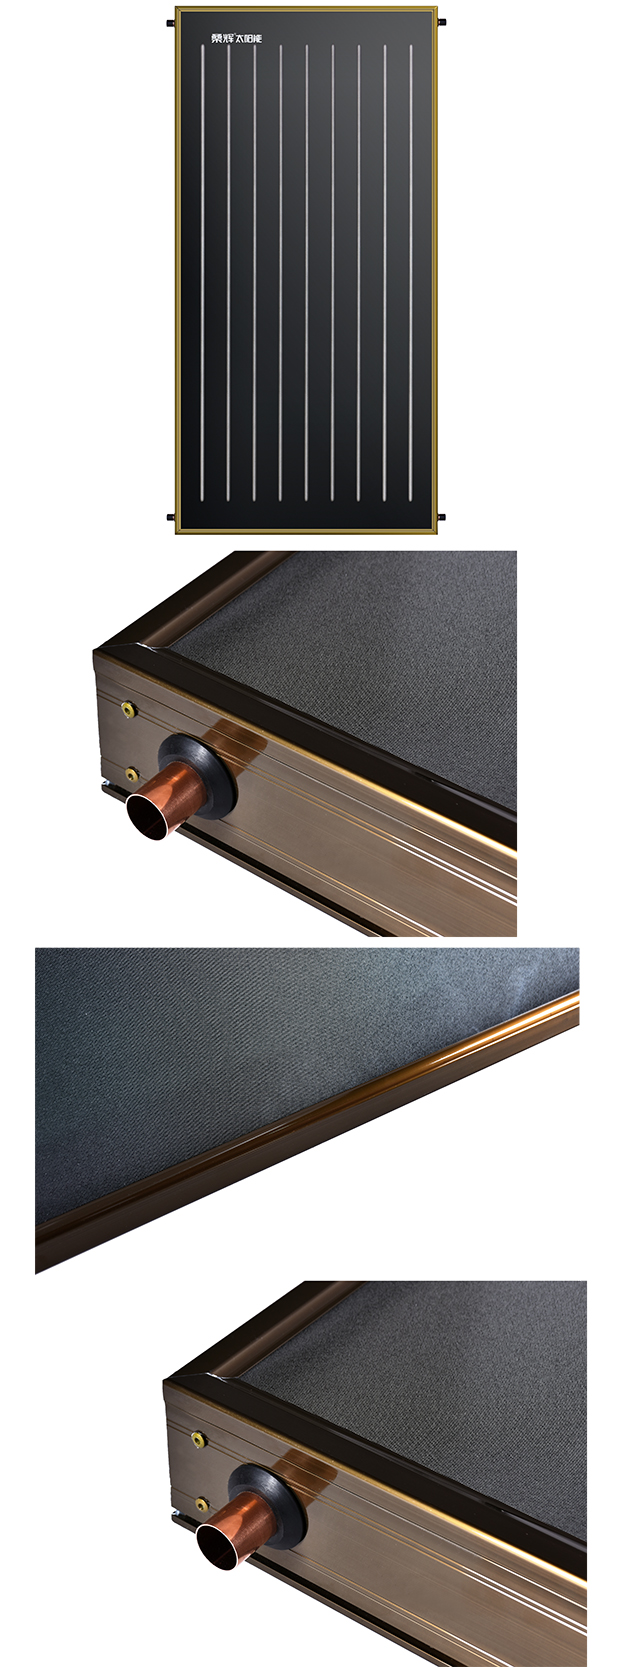 SHe-AO Low Price Copper Tube Anodized Oxidation Absorber Coating Solar Hot Water System For India Market